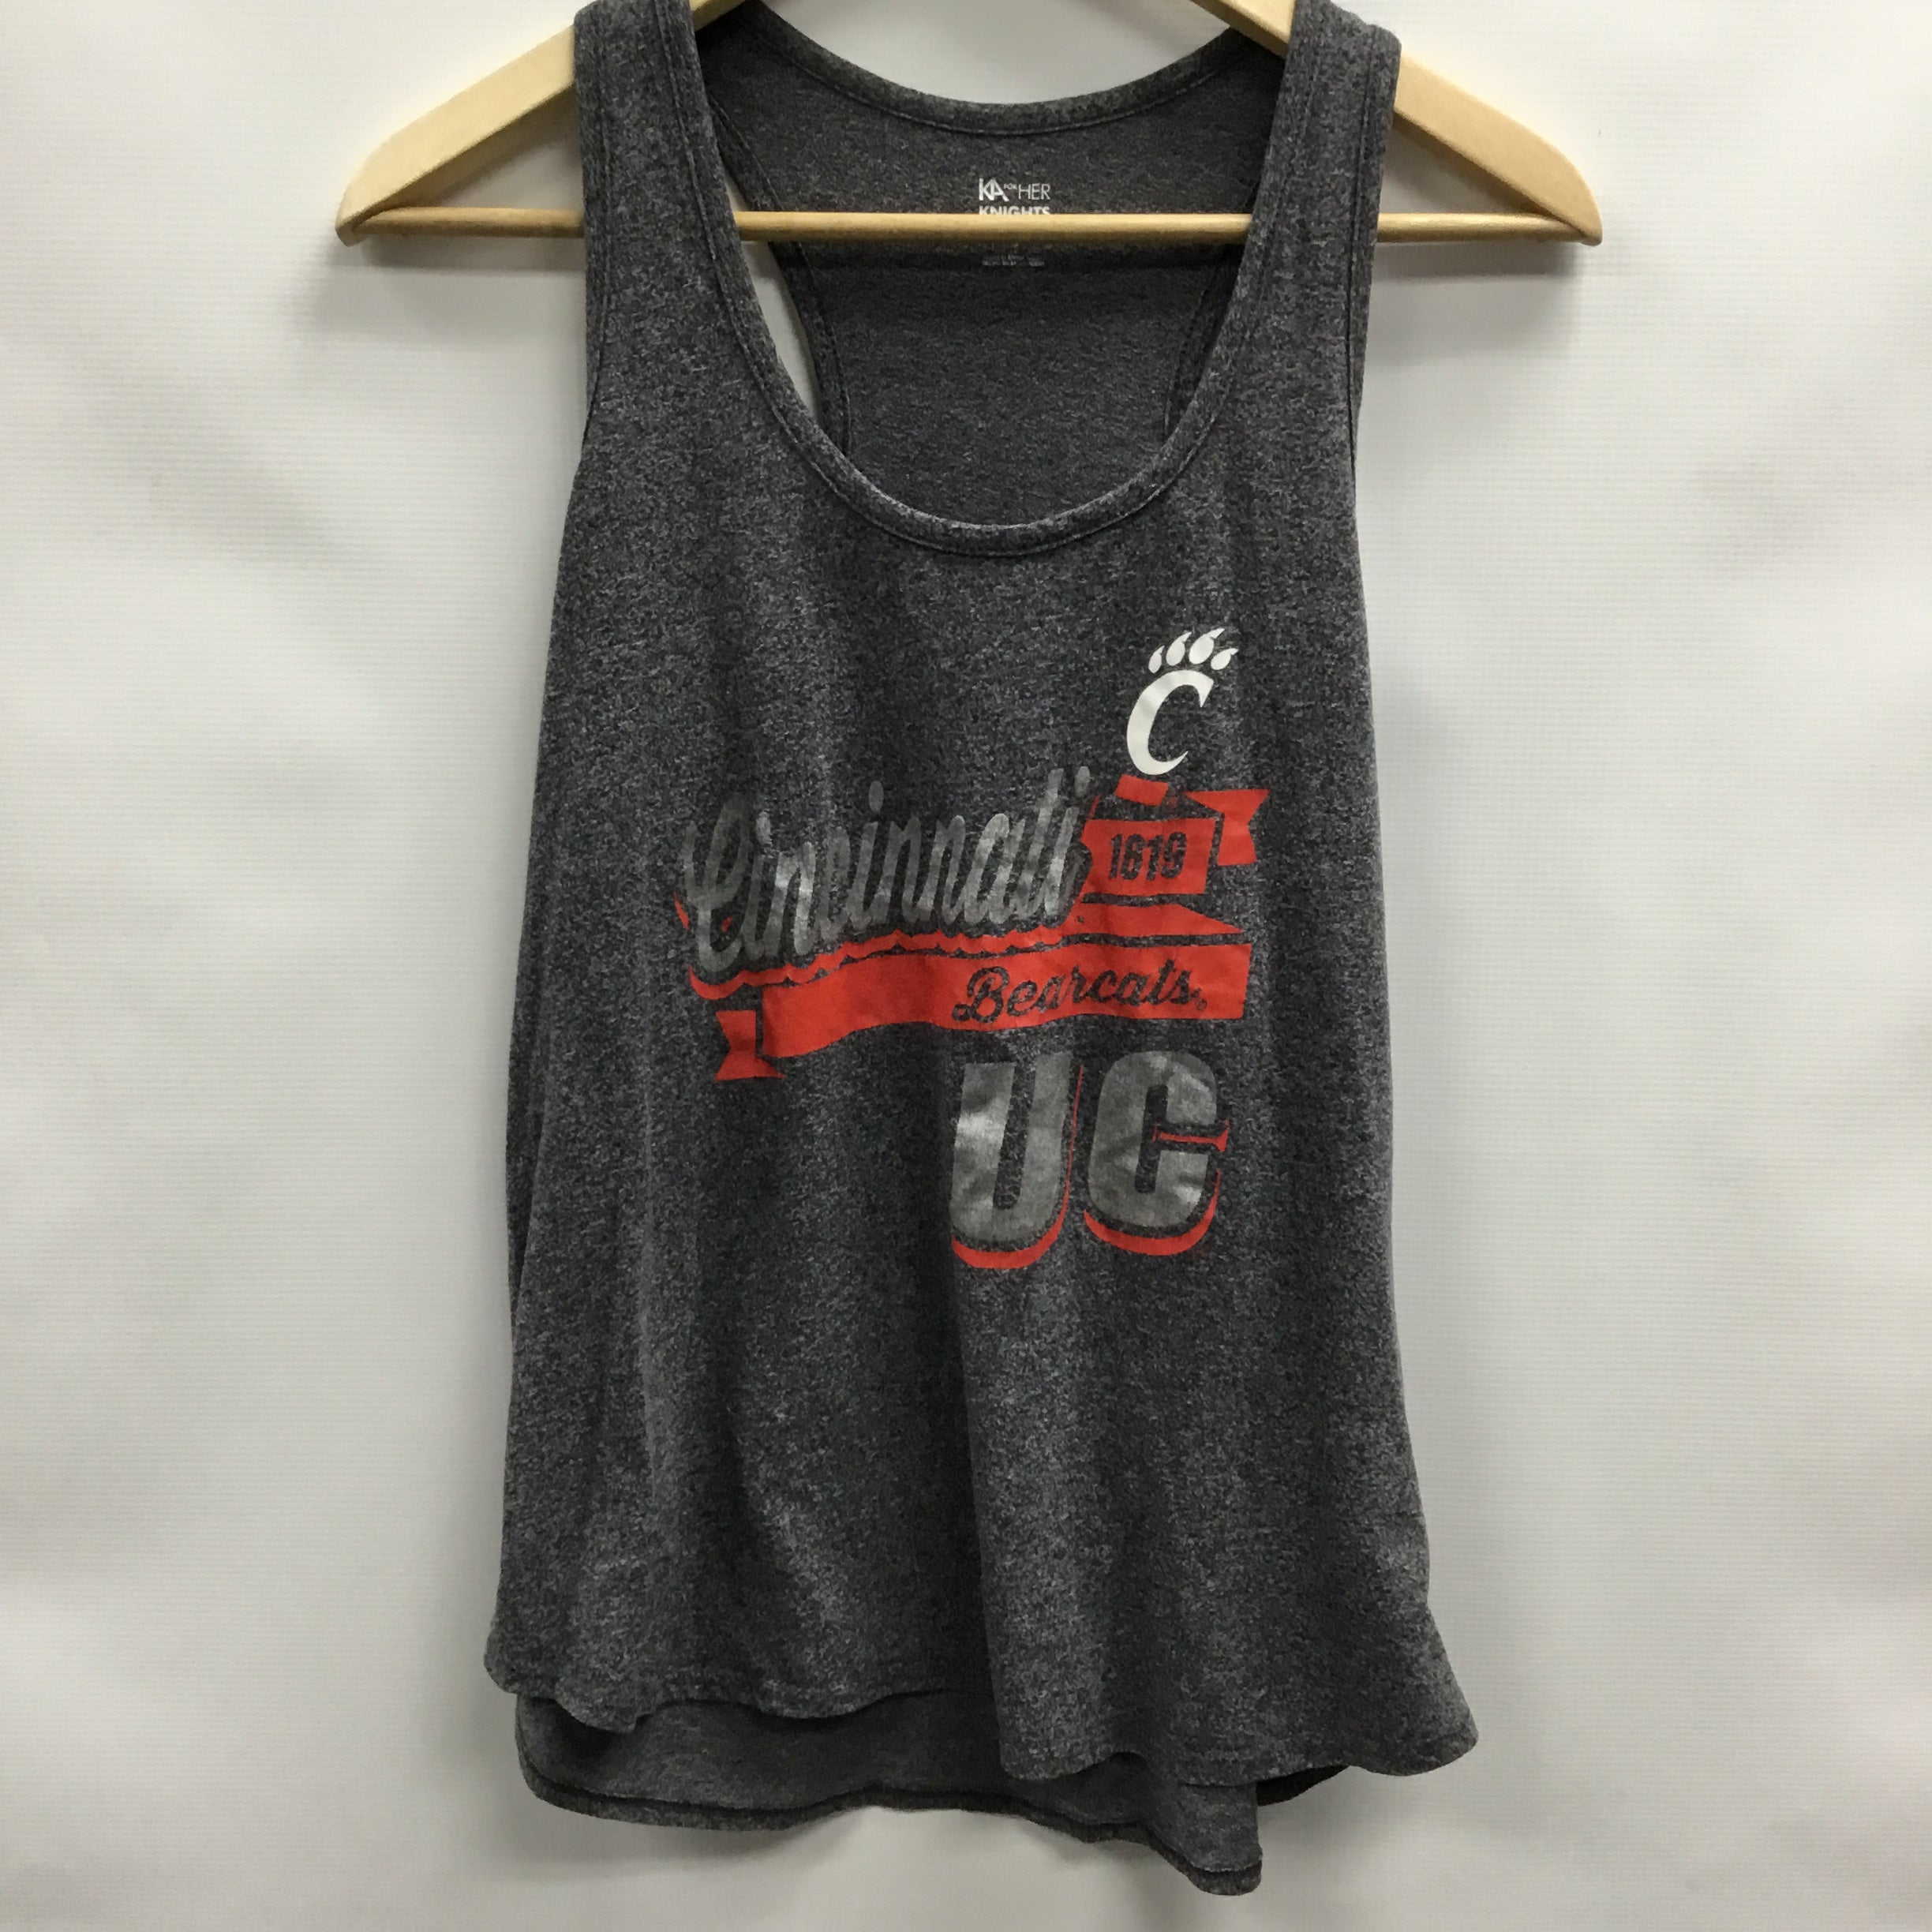 Primary Photo - BRAND:   CMC <BR>STYLE: ATHLETIC TANK TOP <BR>COLOR: GREY <BR>SIZE: XL <BR>OTHER INFO: KNIGHTS APPAREL - U CINCINNATI <BR>SKU: 194-194234-982